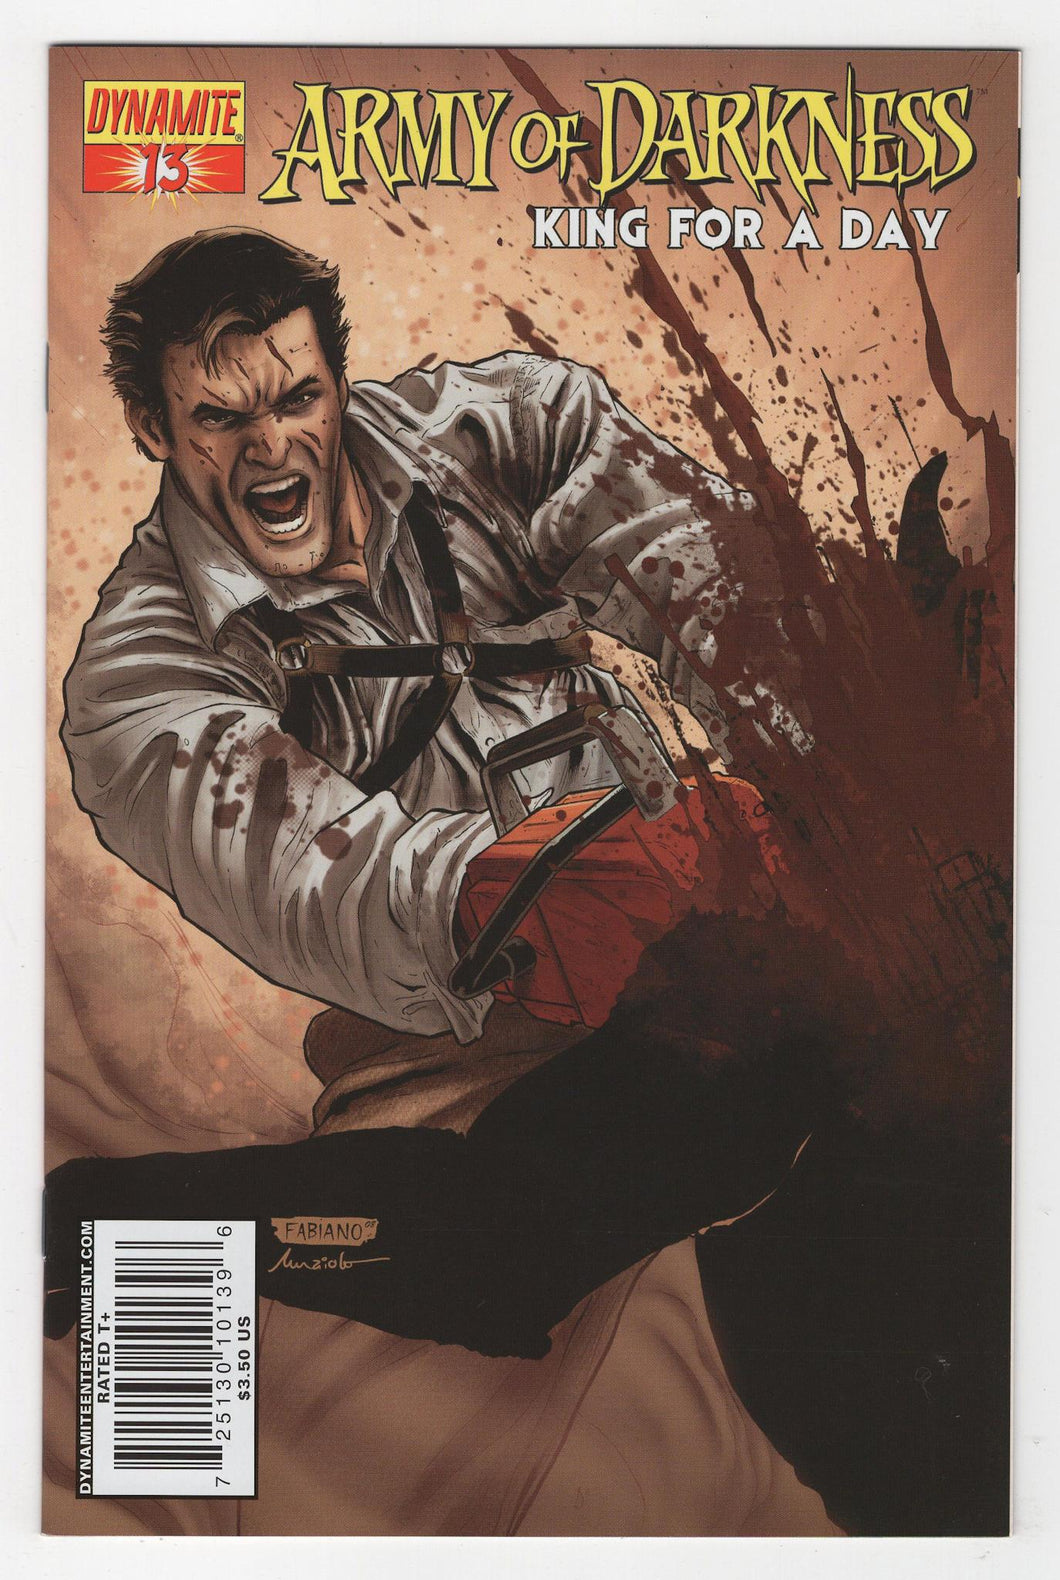 Army of Darkness #13 Cover Front